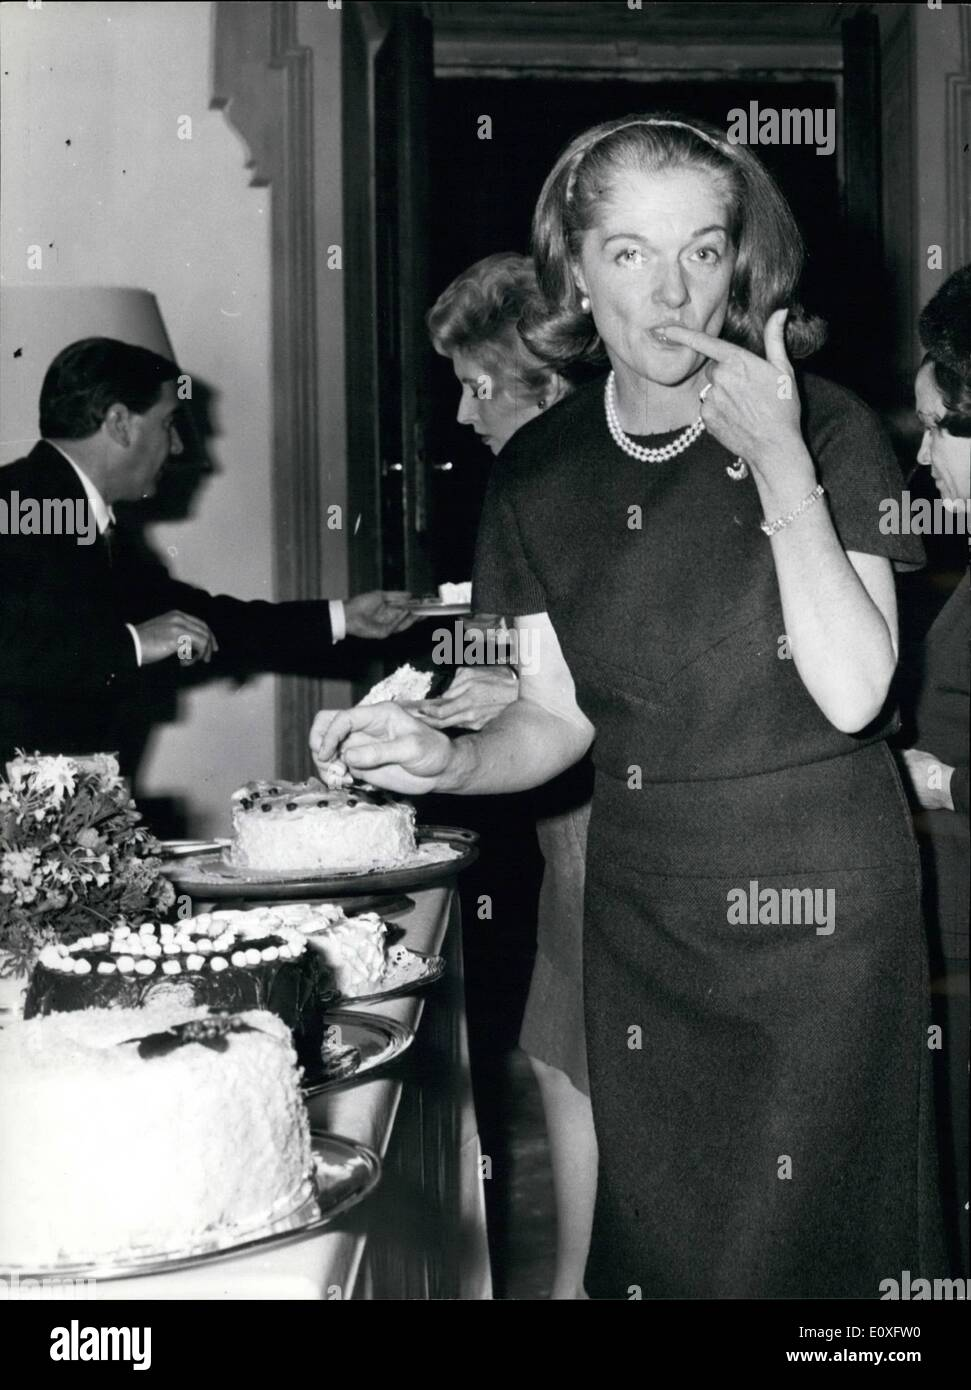 Nov. 11, 1966 - Tarts and Diplomacy: Mrs. Lillian Larke Tootle Reinhardt, wife of the US Ambassador in Rome, demonstrated - Stock Image